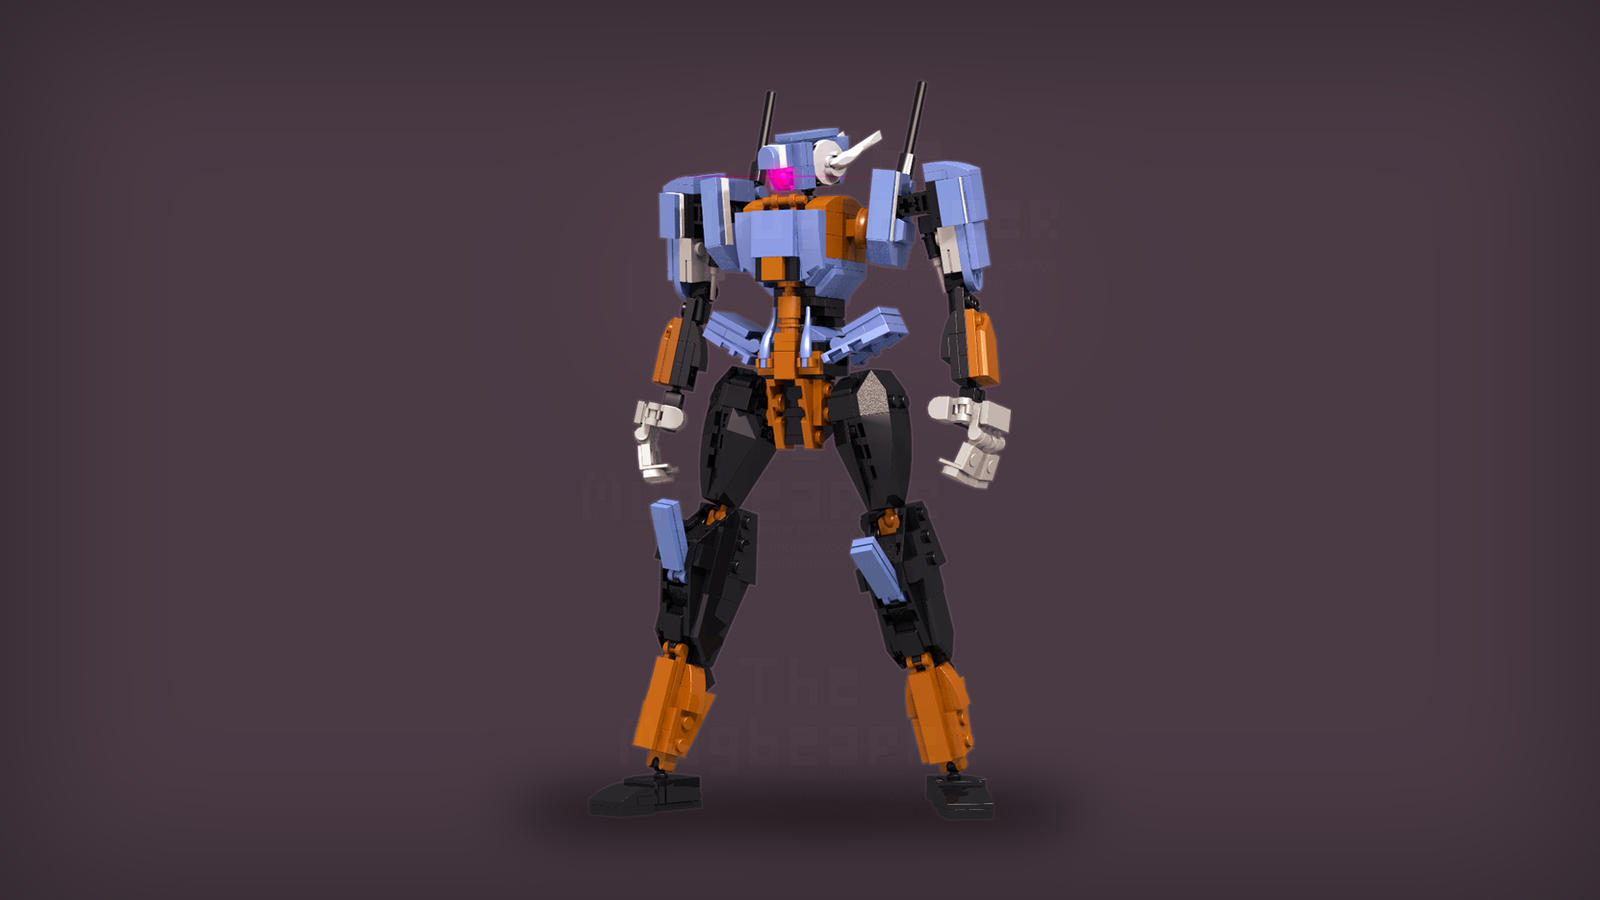 MOCtober 2017 #14 - Ksenolog's Dailybot #7100 by TheMugbearer